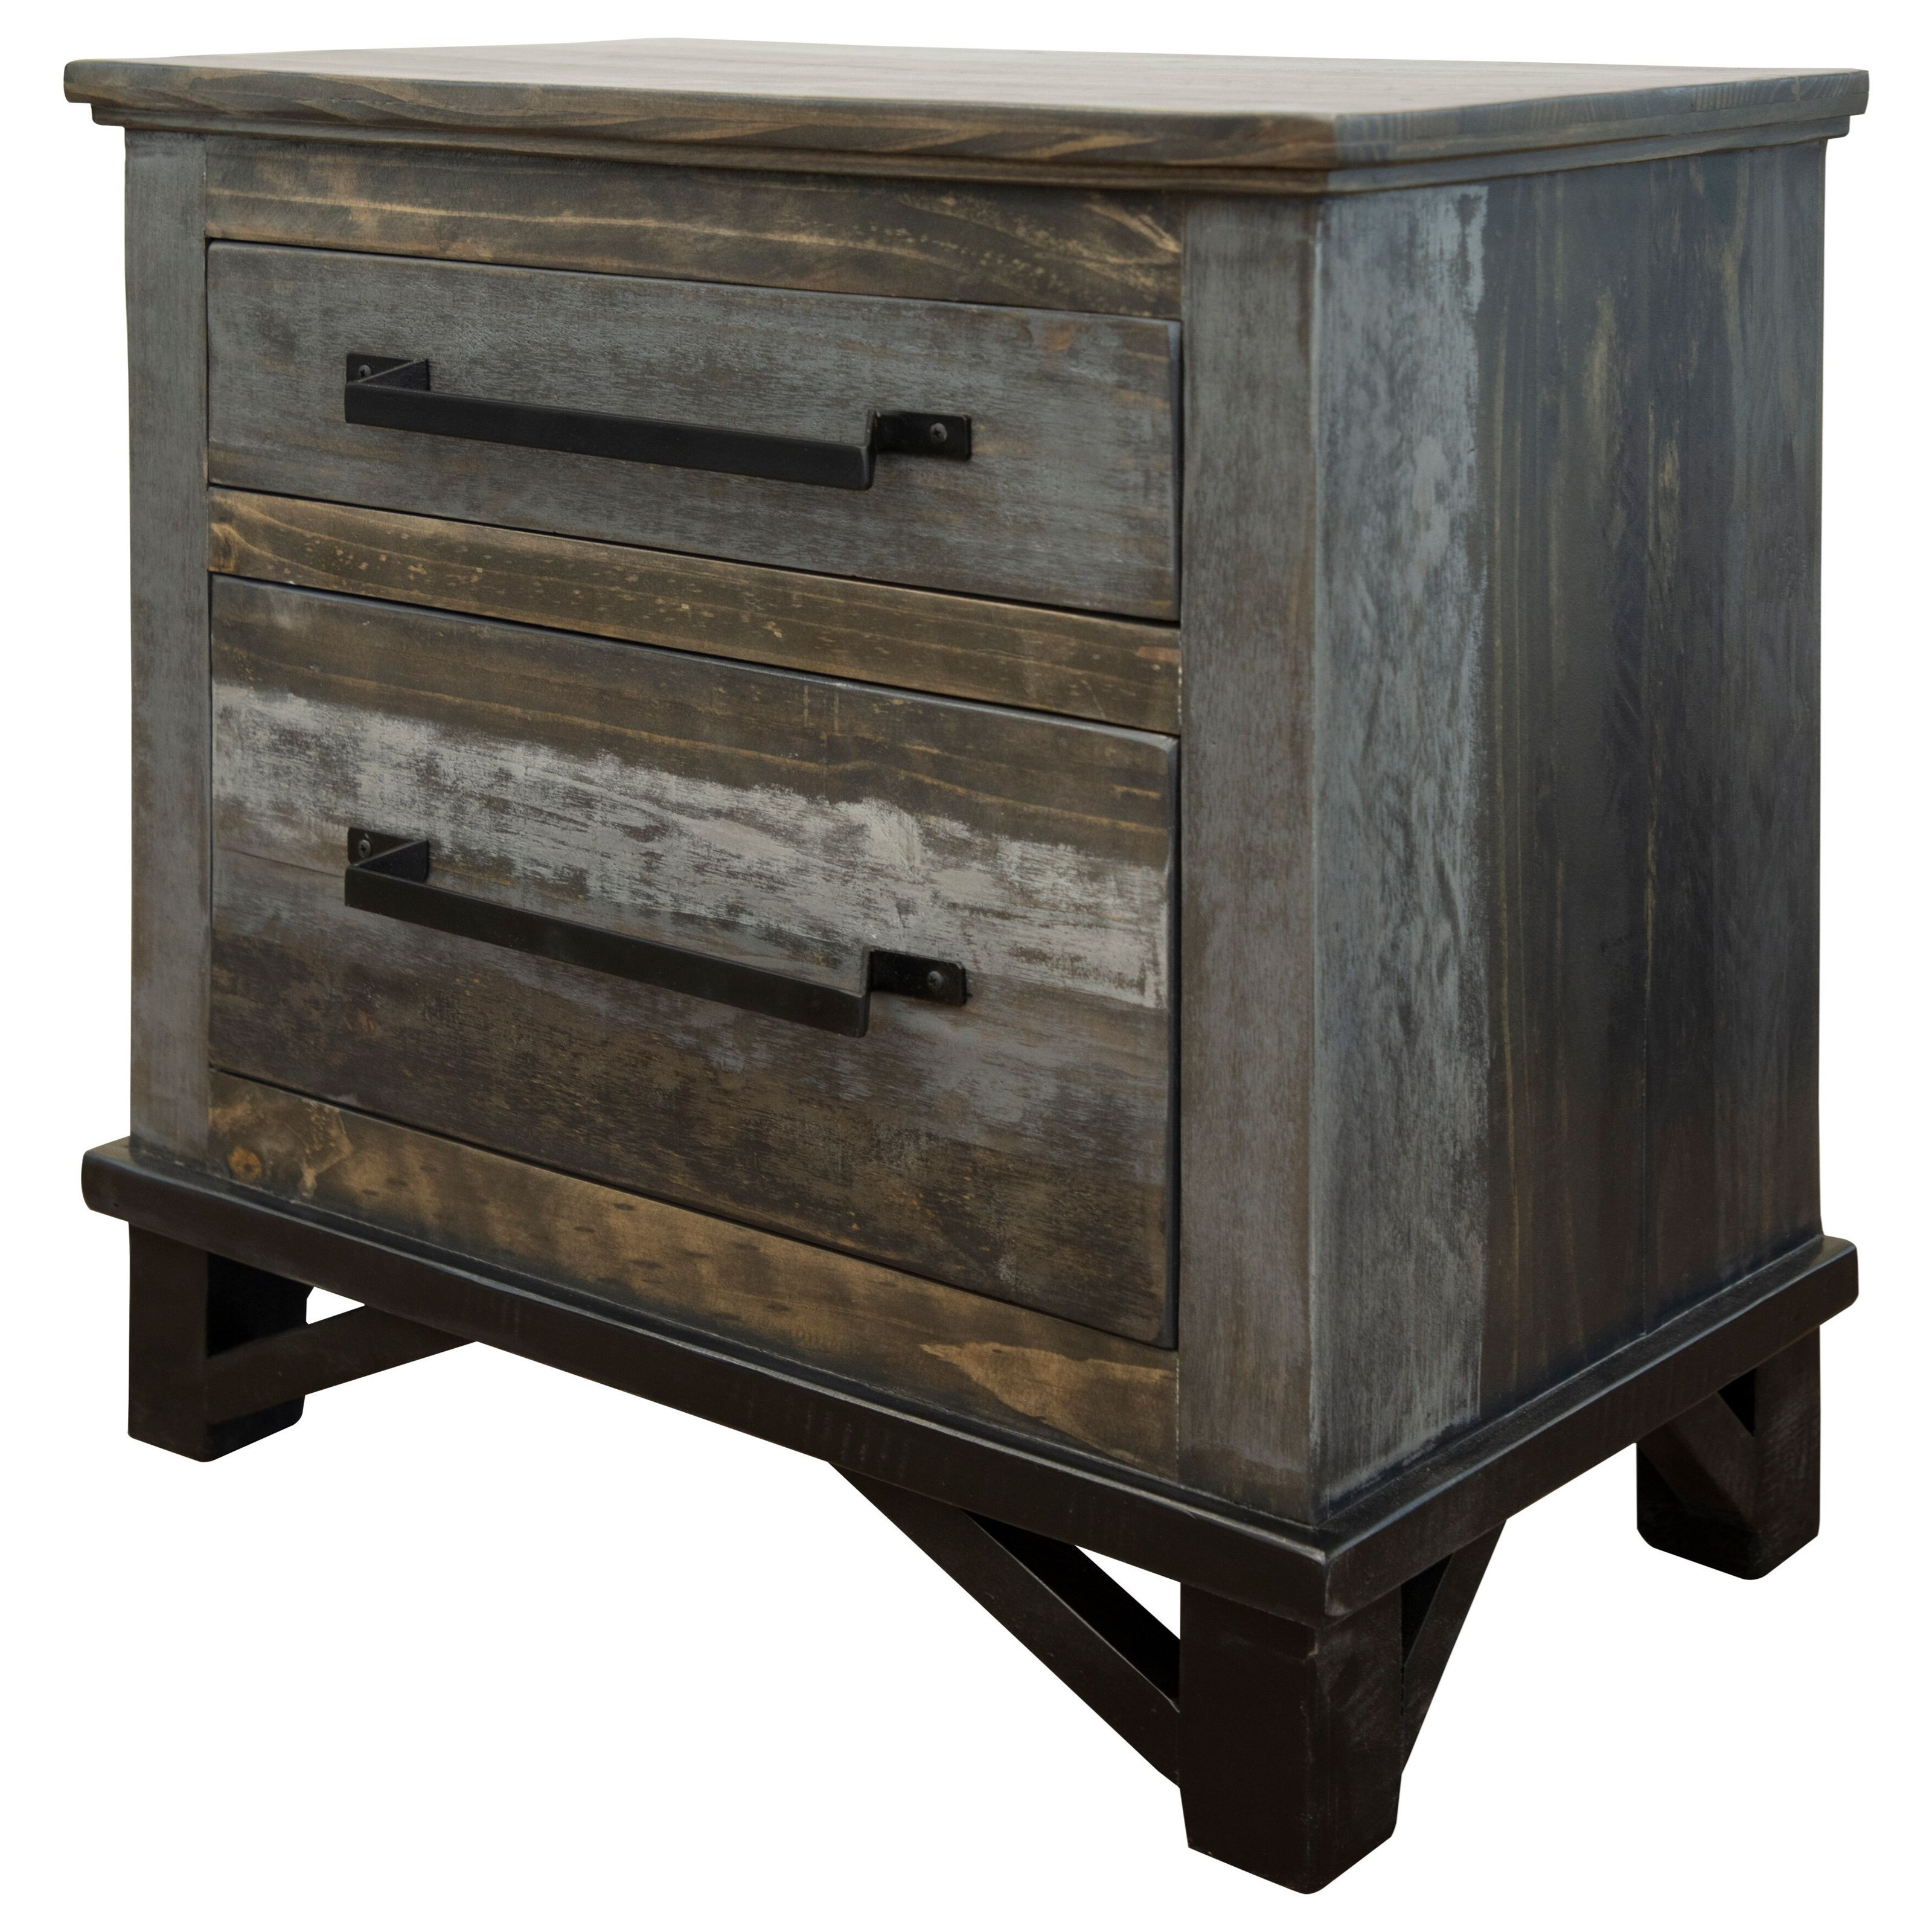 Loft 2 Drawer Nightstand by International Furniture Direct at Darvin Furniture